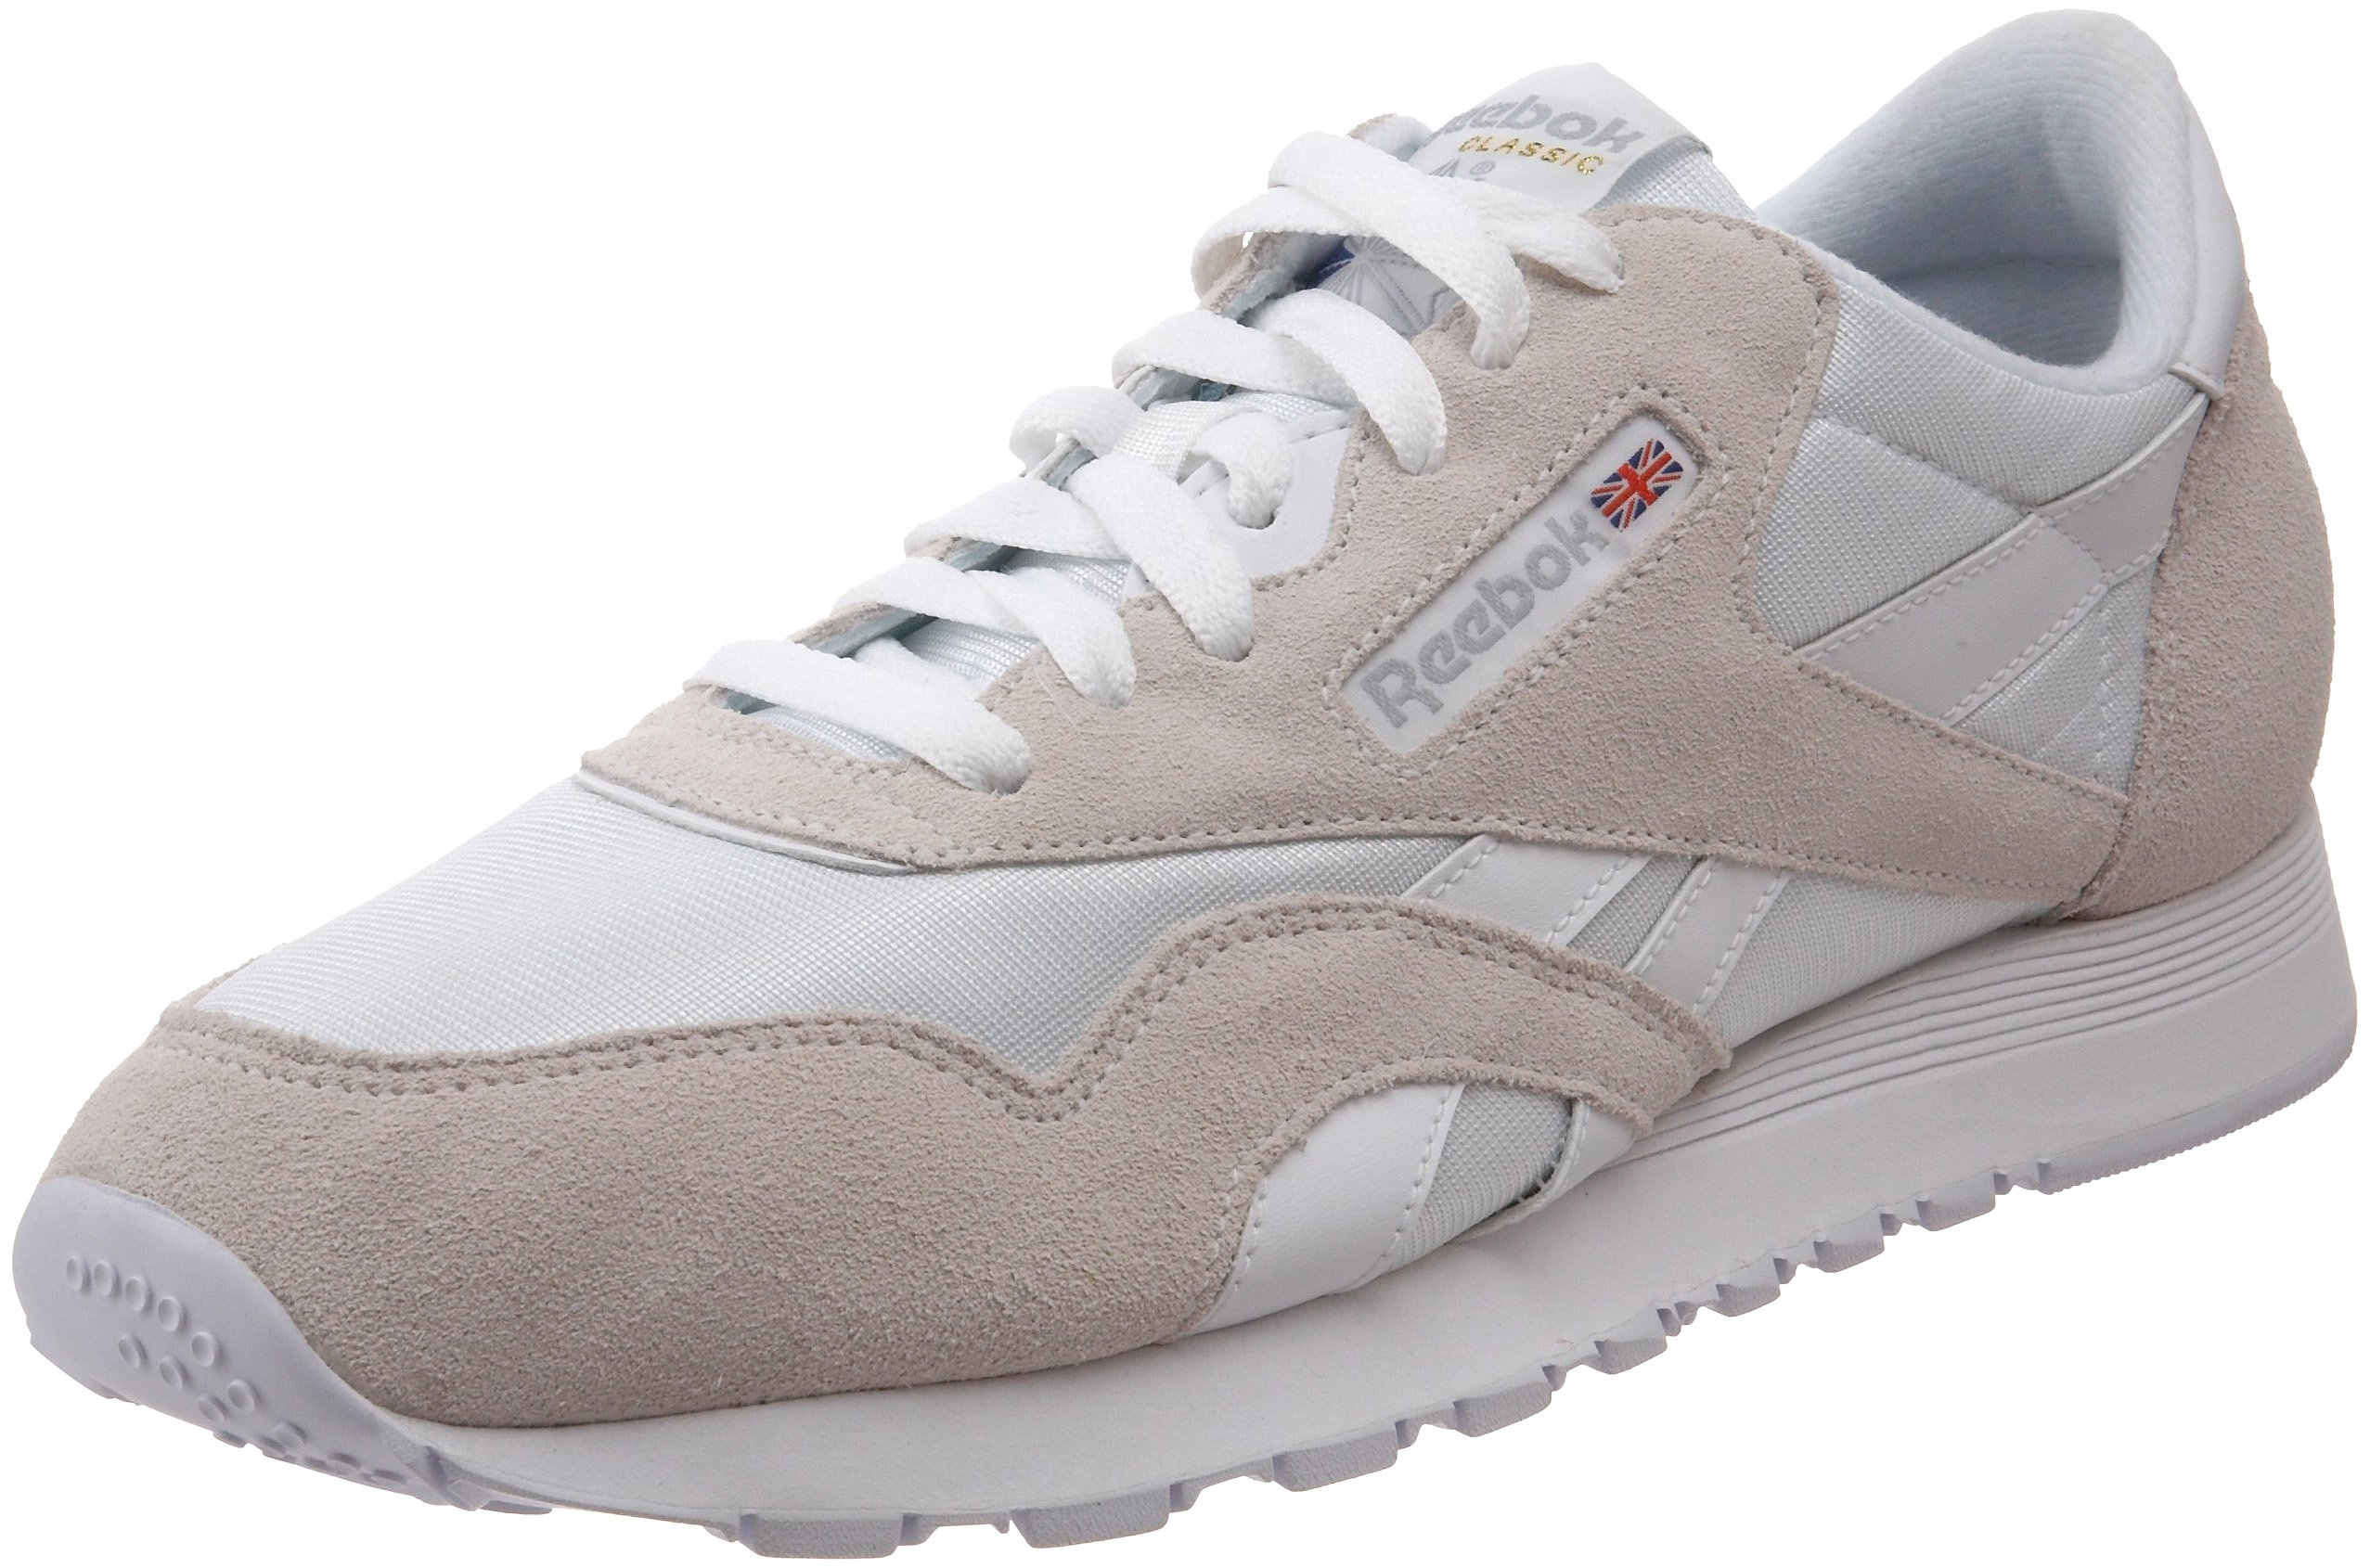 7efb7275563 Galleon - Reebok Men s Classic Sneaker